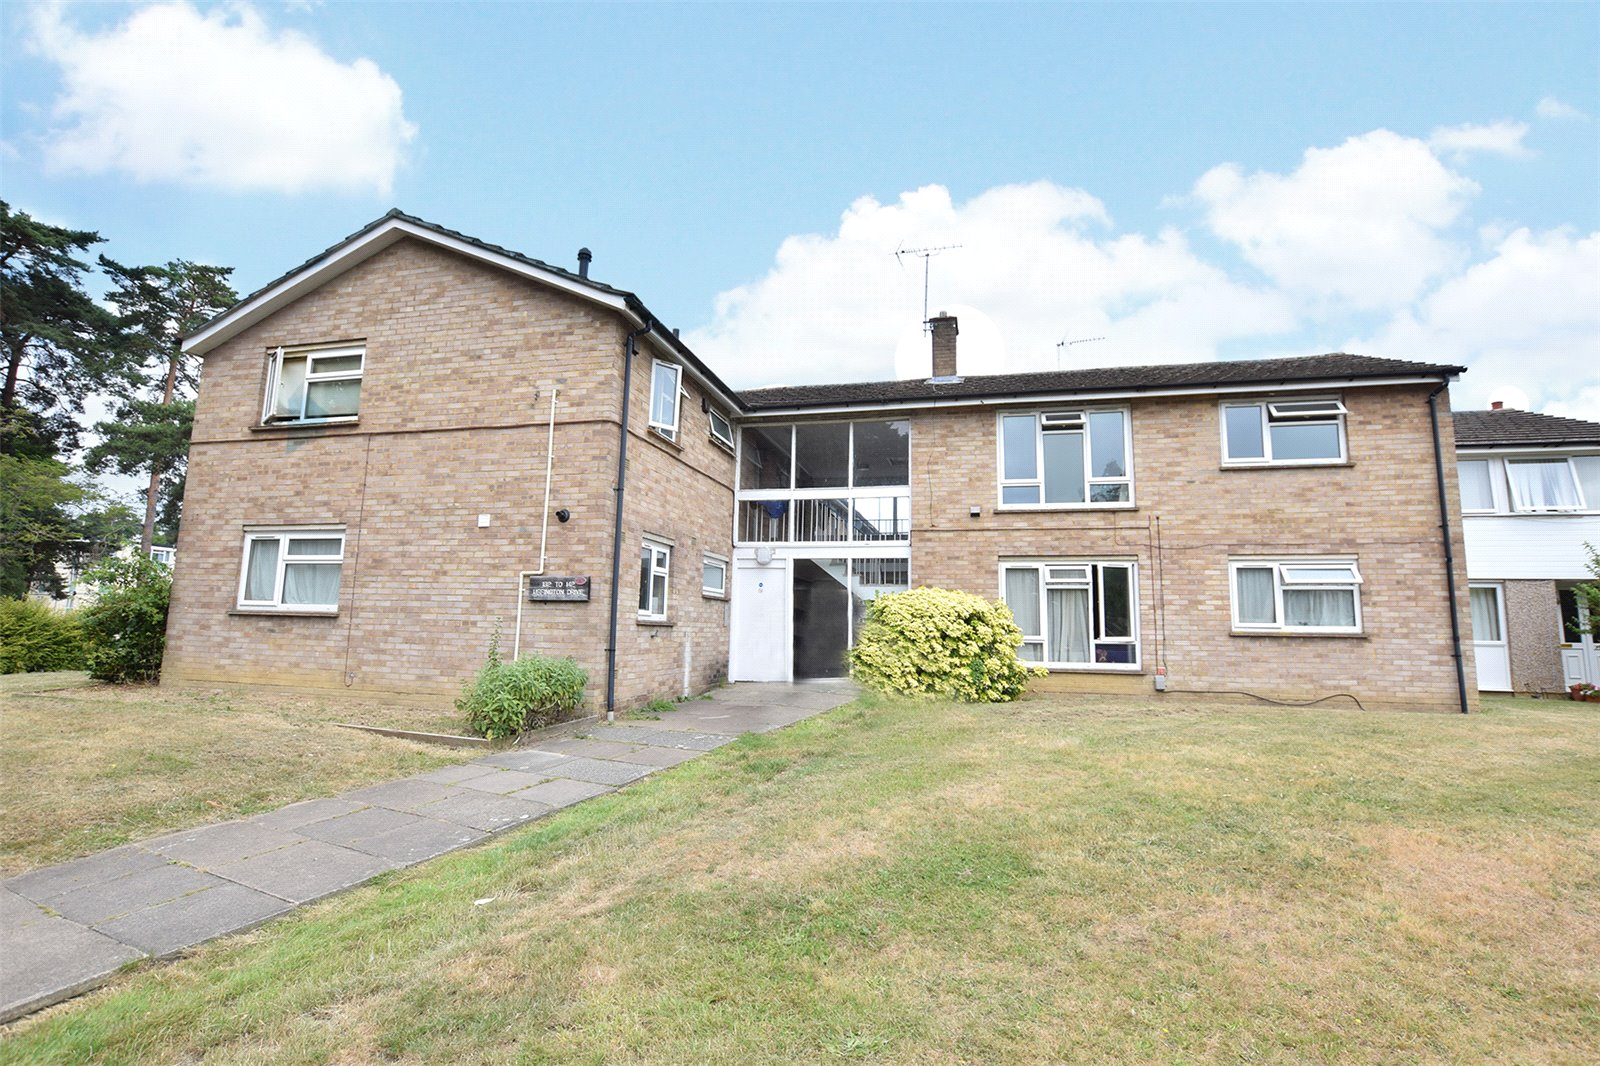 1 Bedroom Apartment Flat for sale in Uffington Drive, Harmans Water, Bracknell, Berkshire, RG12